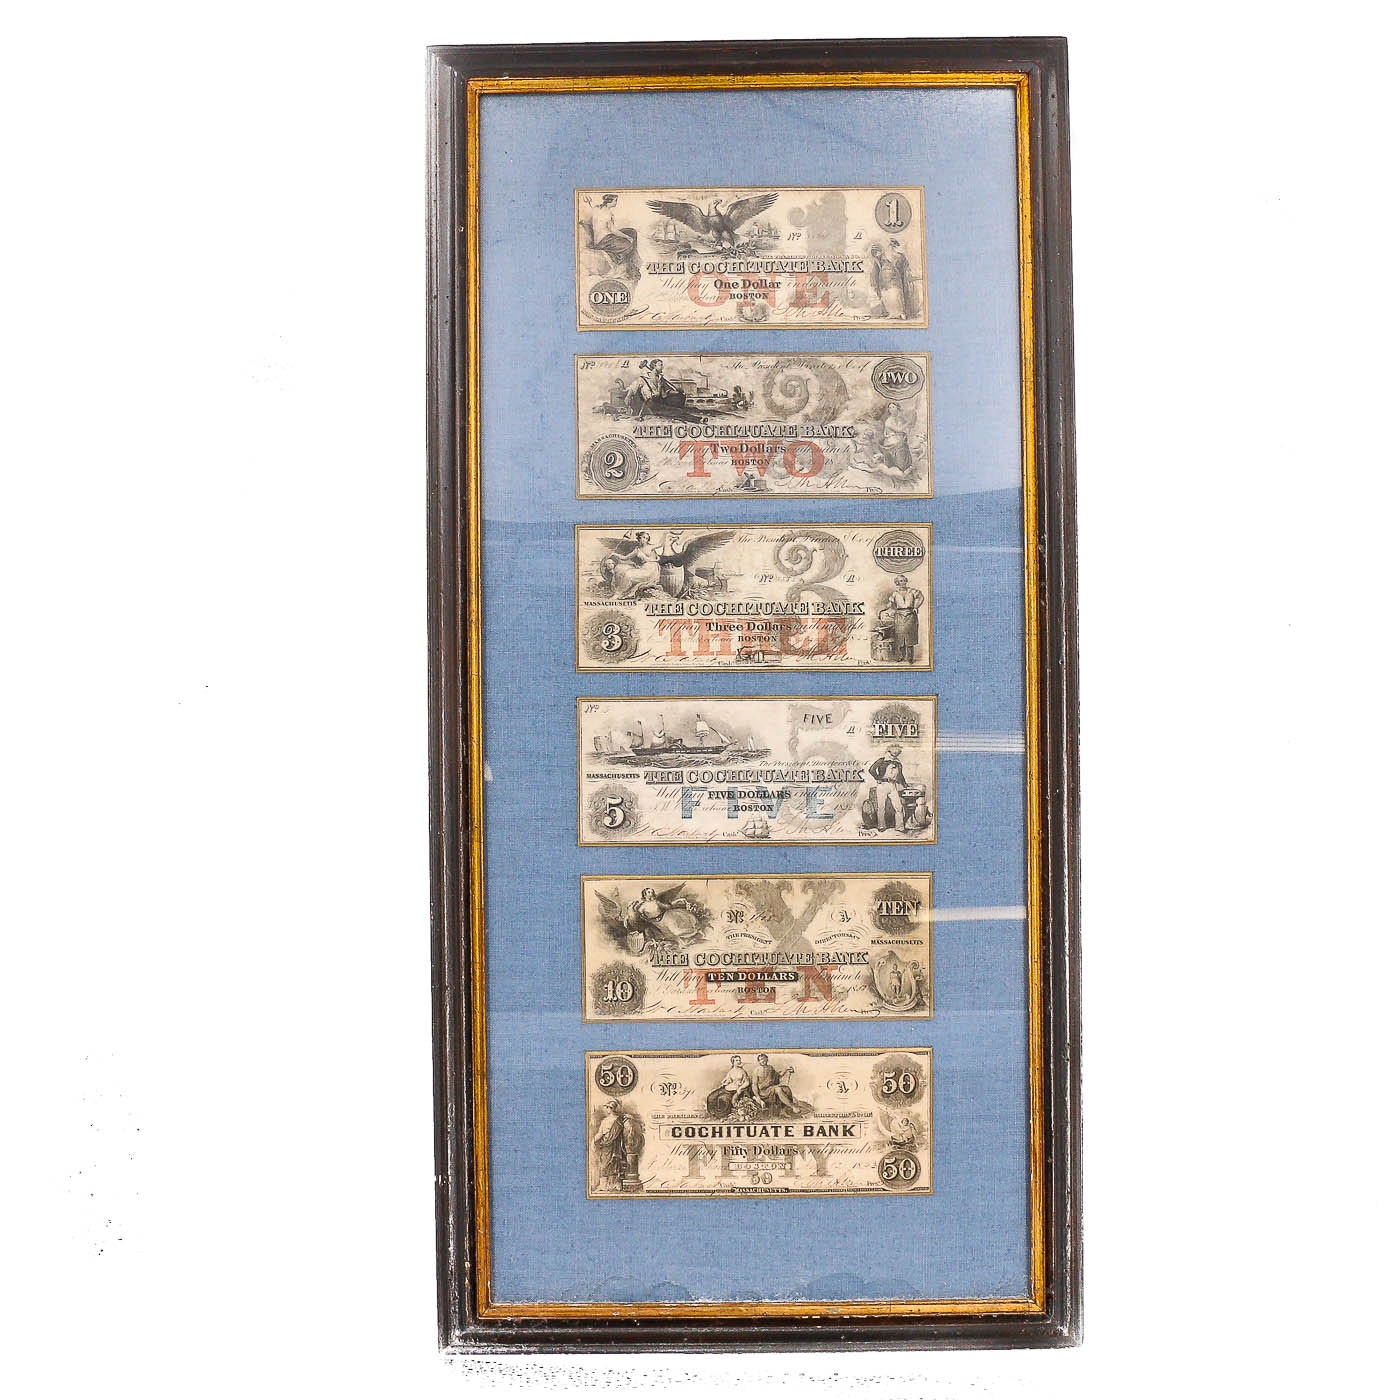 Framed Set of Six Obsolete Cochituate Bank Currency Notes from Boston, 1853